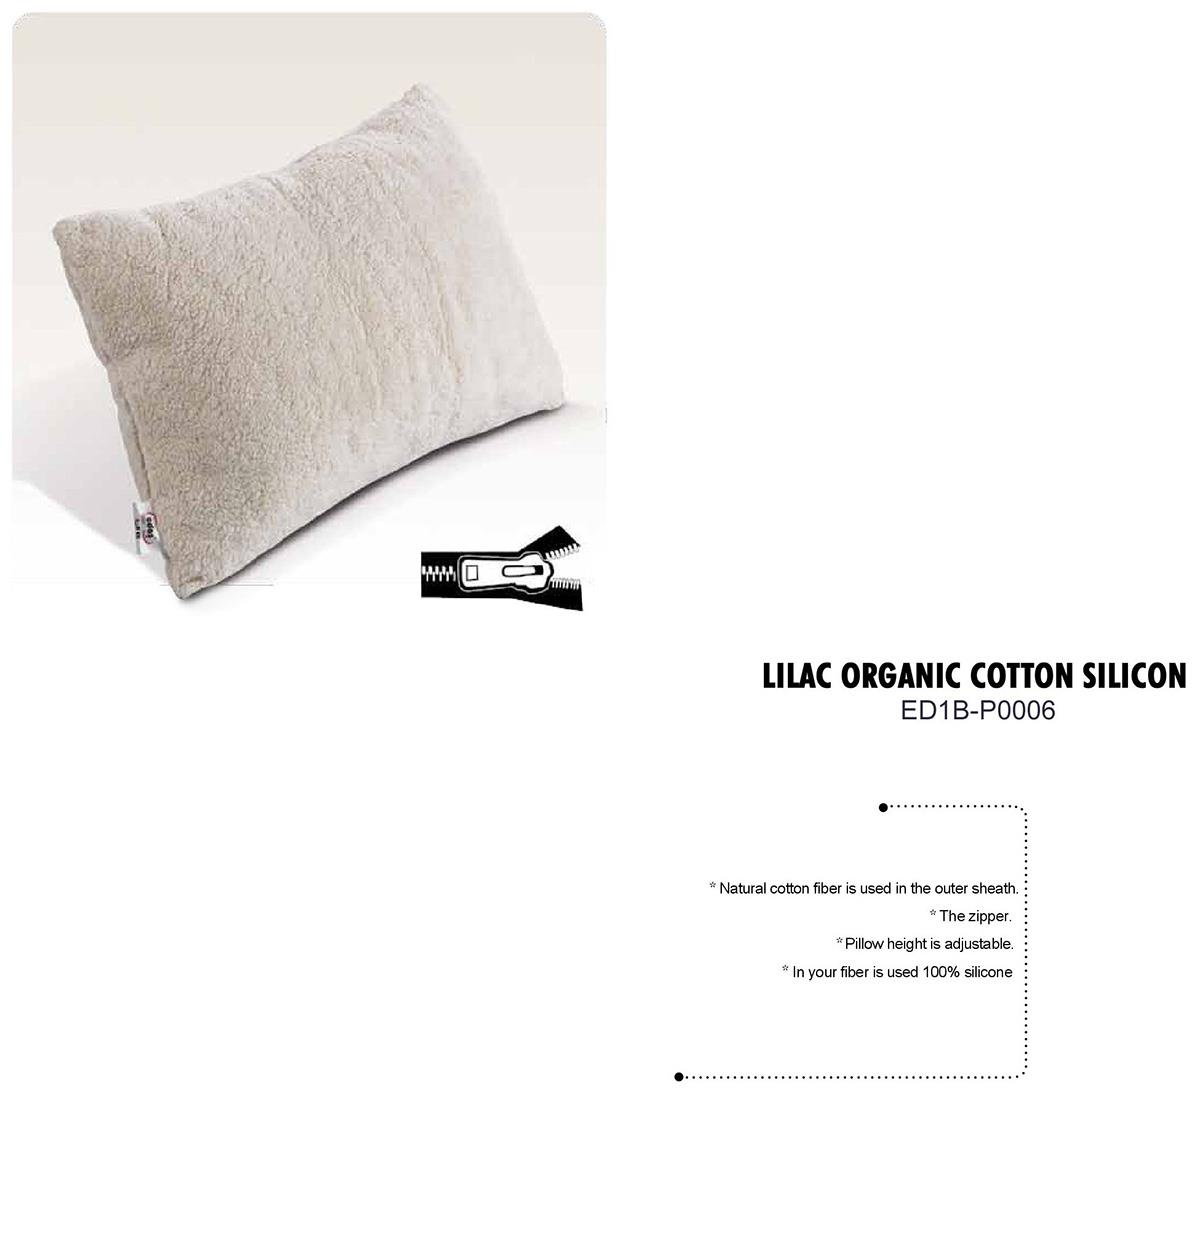 Lilac Organic Cotton Silicon